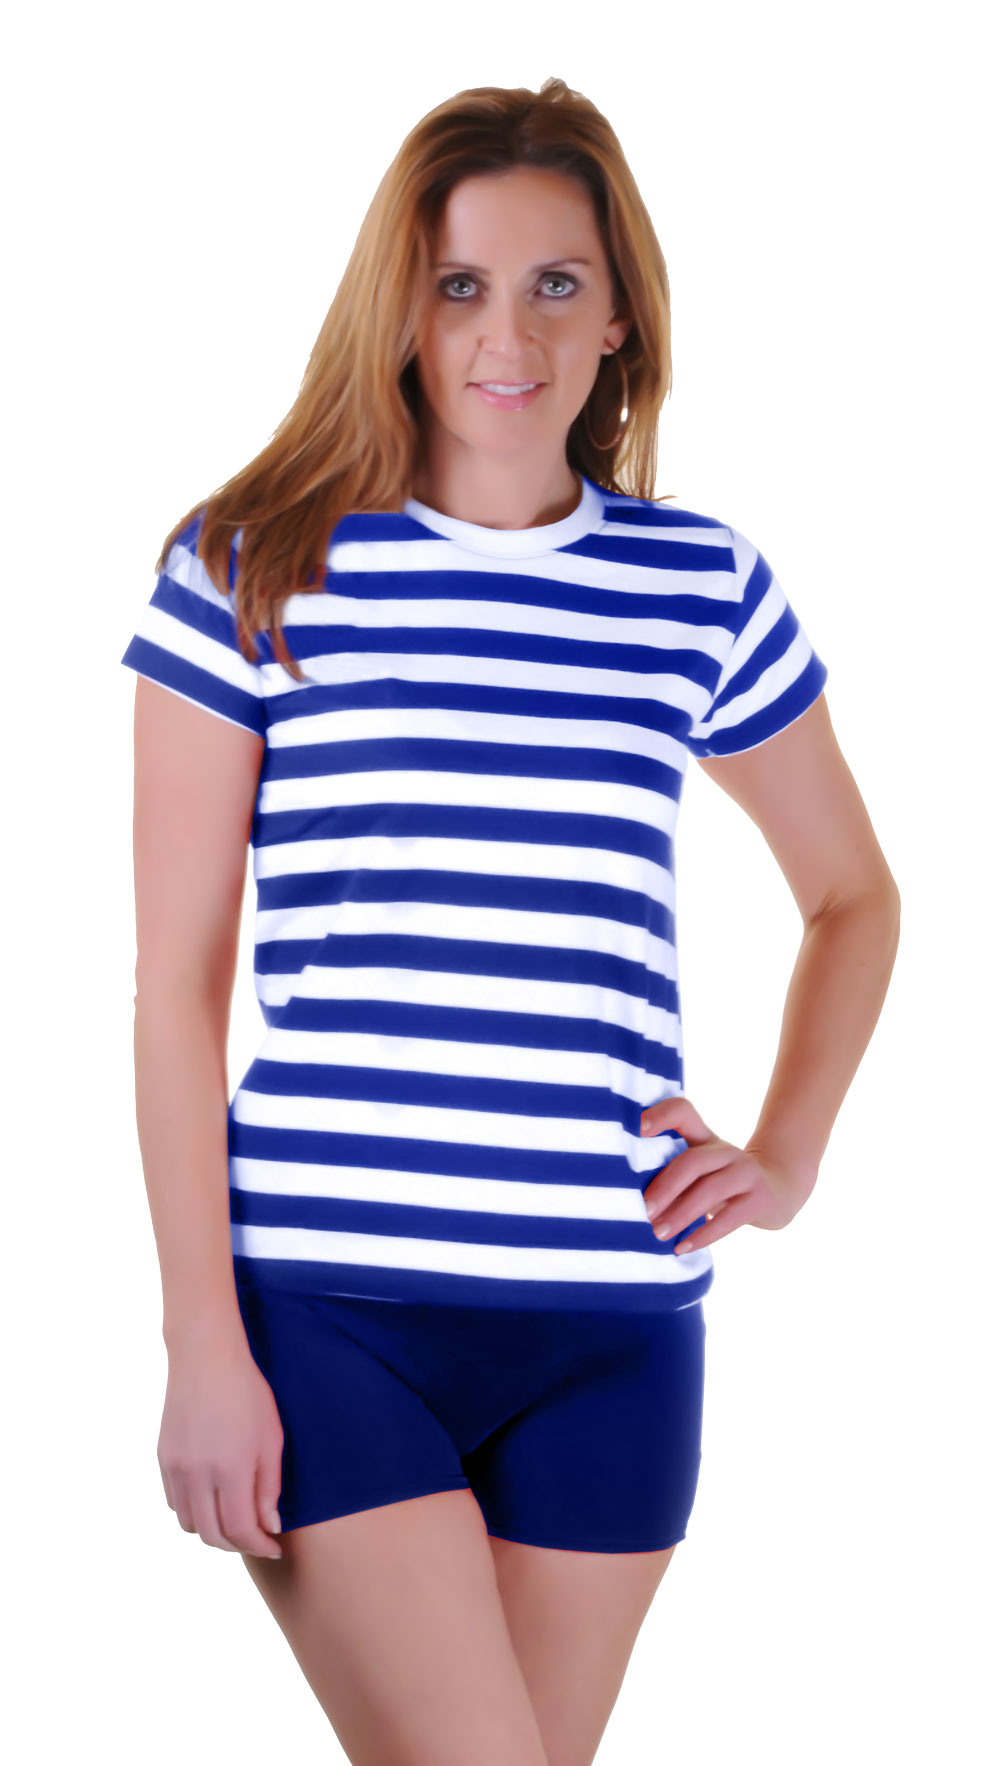 dulcietimmerzfiyaz.ga: blue striped t shirt. From The Community. Amazon Try Prime All Hount Womens Back Lace Color Block Tunic Tops Long Sleeve T-Shirts Blouses with Striped Hem. by Hount. $ - $ $ 6 $ 16 99 Prime. FREE Shipping on eligible orders. Some sizes/colors are Prime eligible.